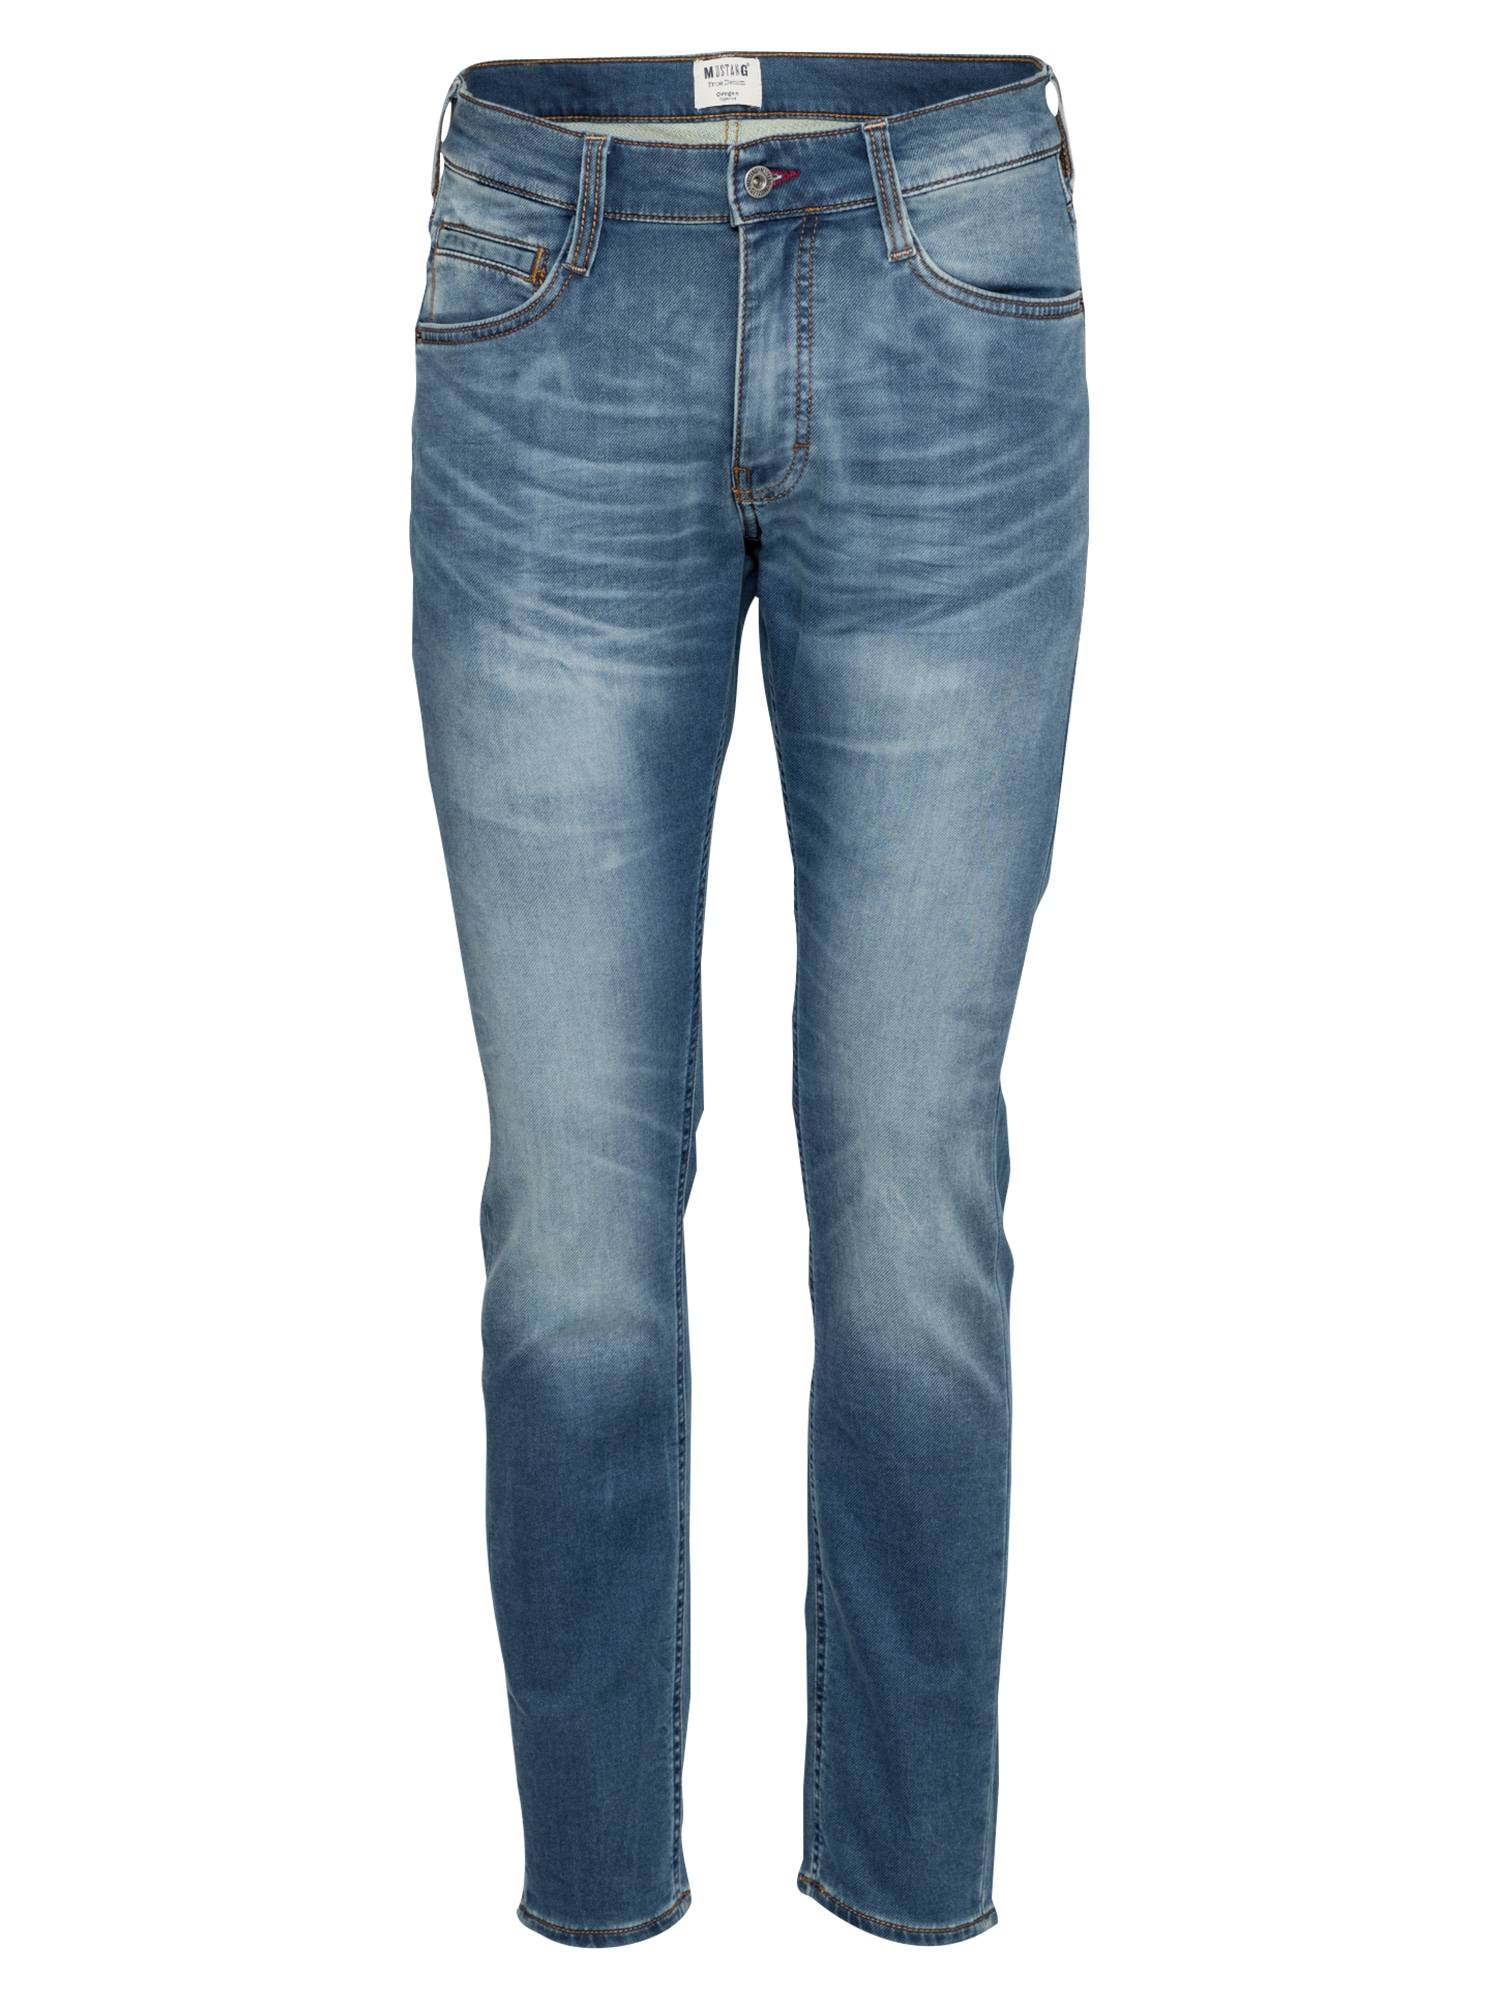 MUSTANG Jean 'Oregon Tapered K'  - Bleu - Taille: 32 - male